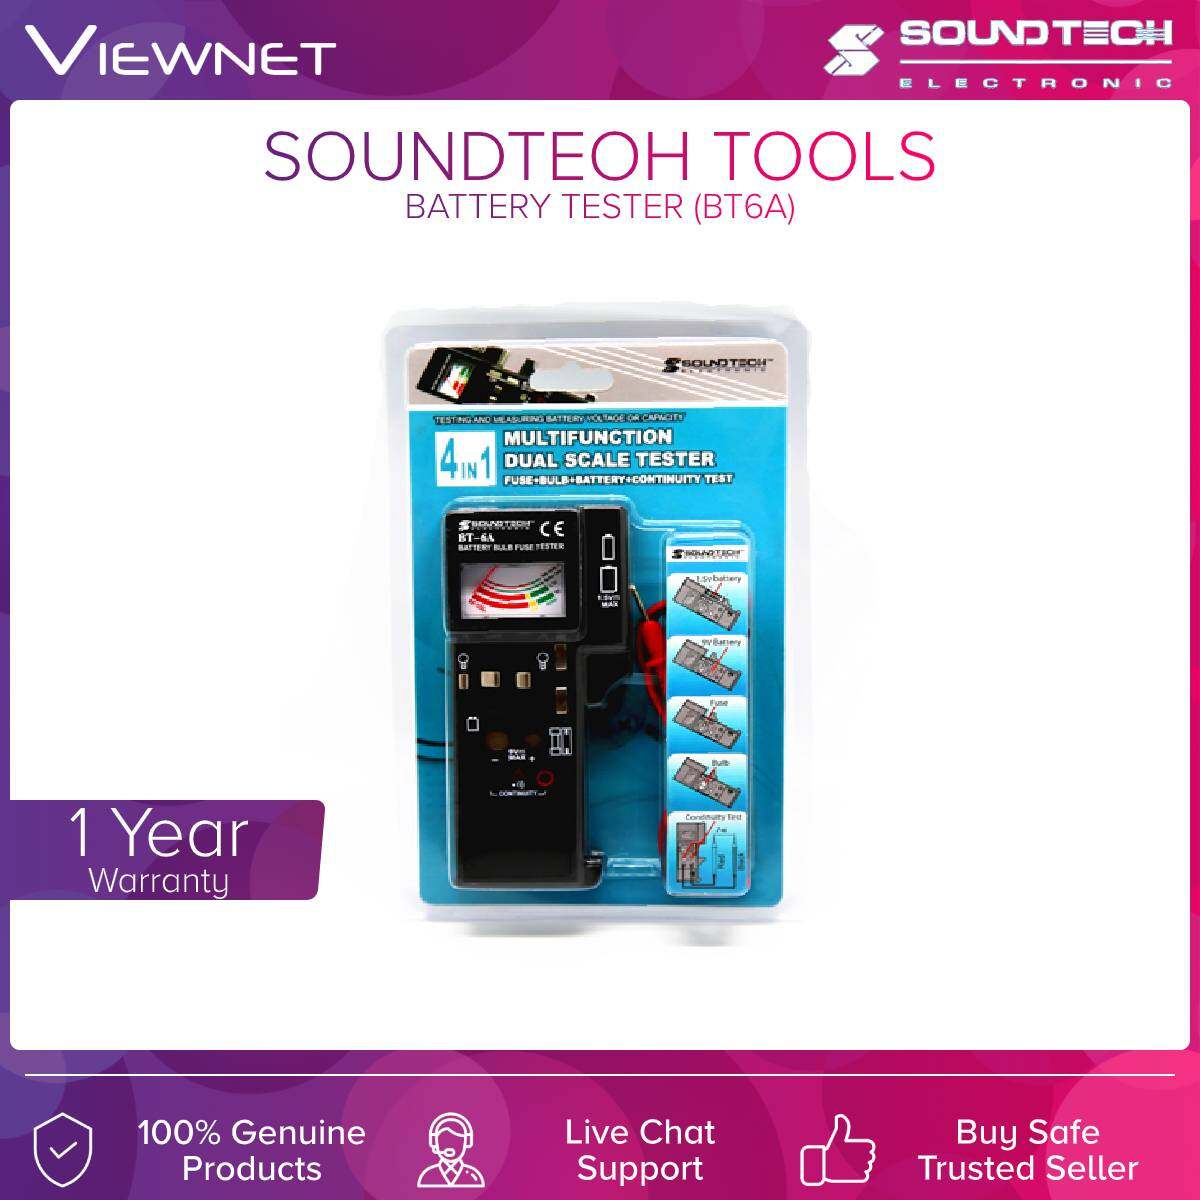 Soundteoh (BT6A) Tools Battery Tester